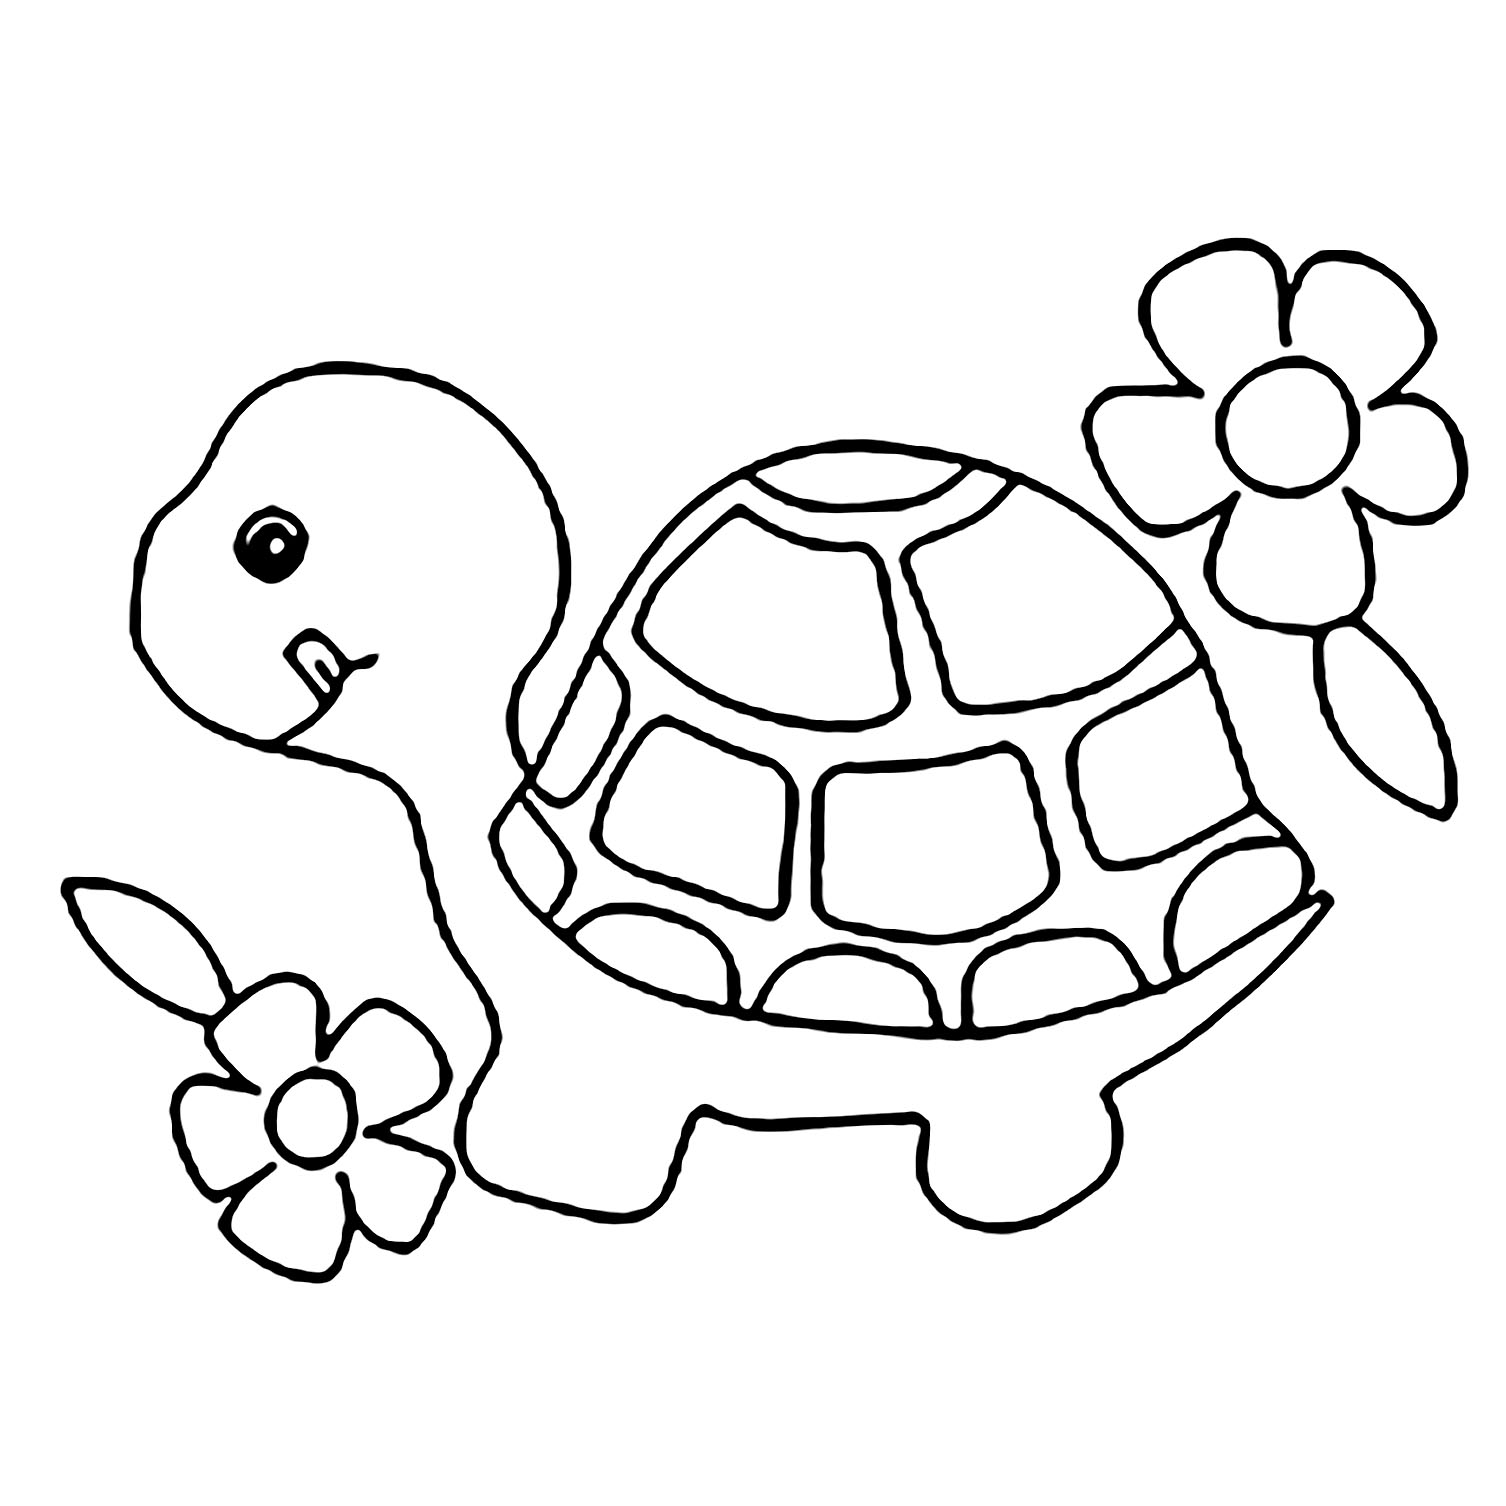 tortoise coloring page coloring pages turtles free printable coloring pages coloring tortoise page